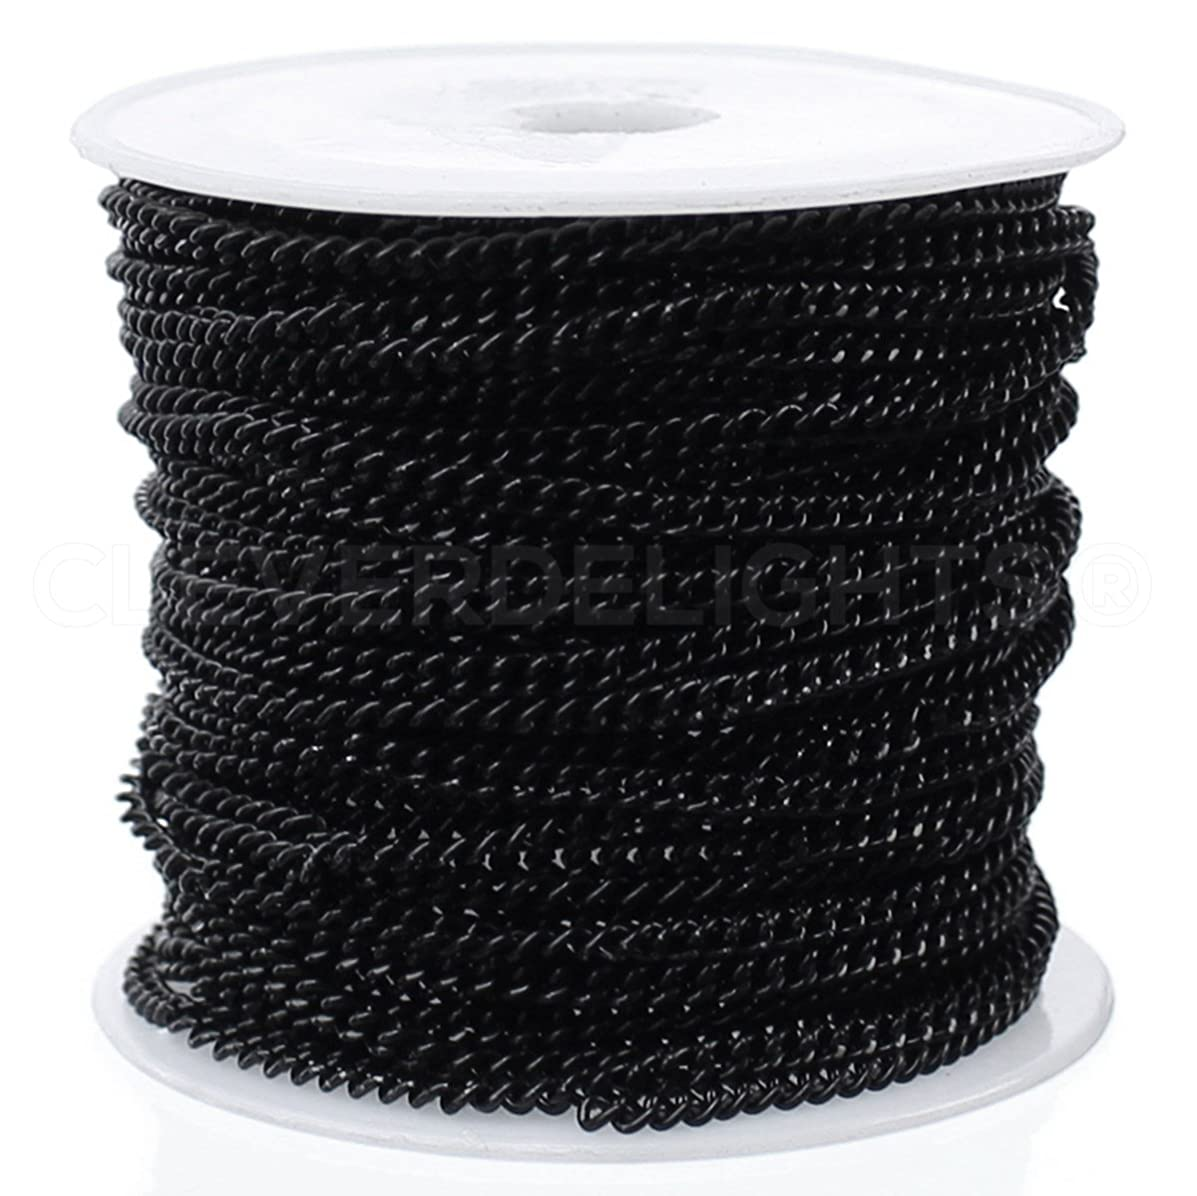 CleverDelights Curb Chain Spool - 2.2x3mm Link - Dark Black Color - 100 Feet - Bulk Jewelry Roll